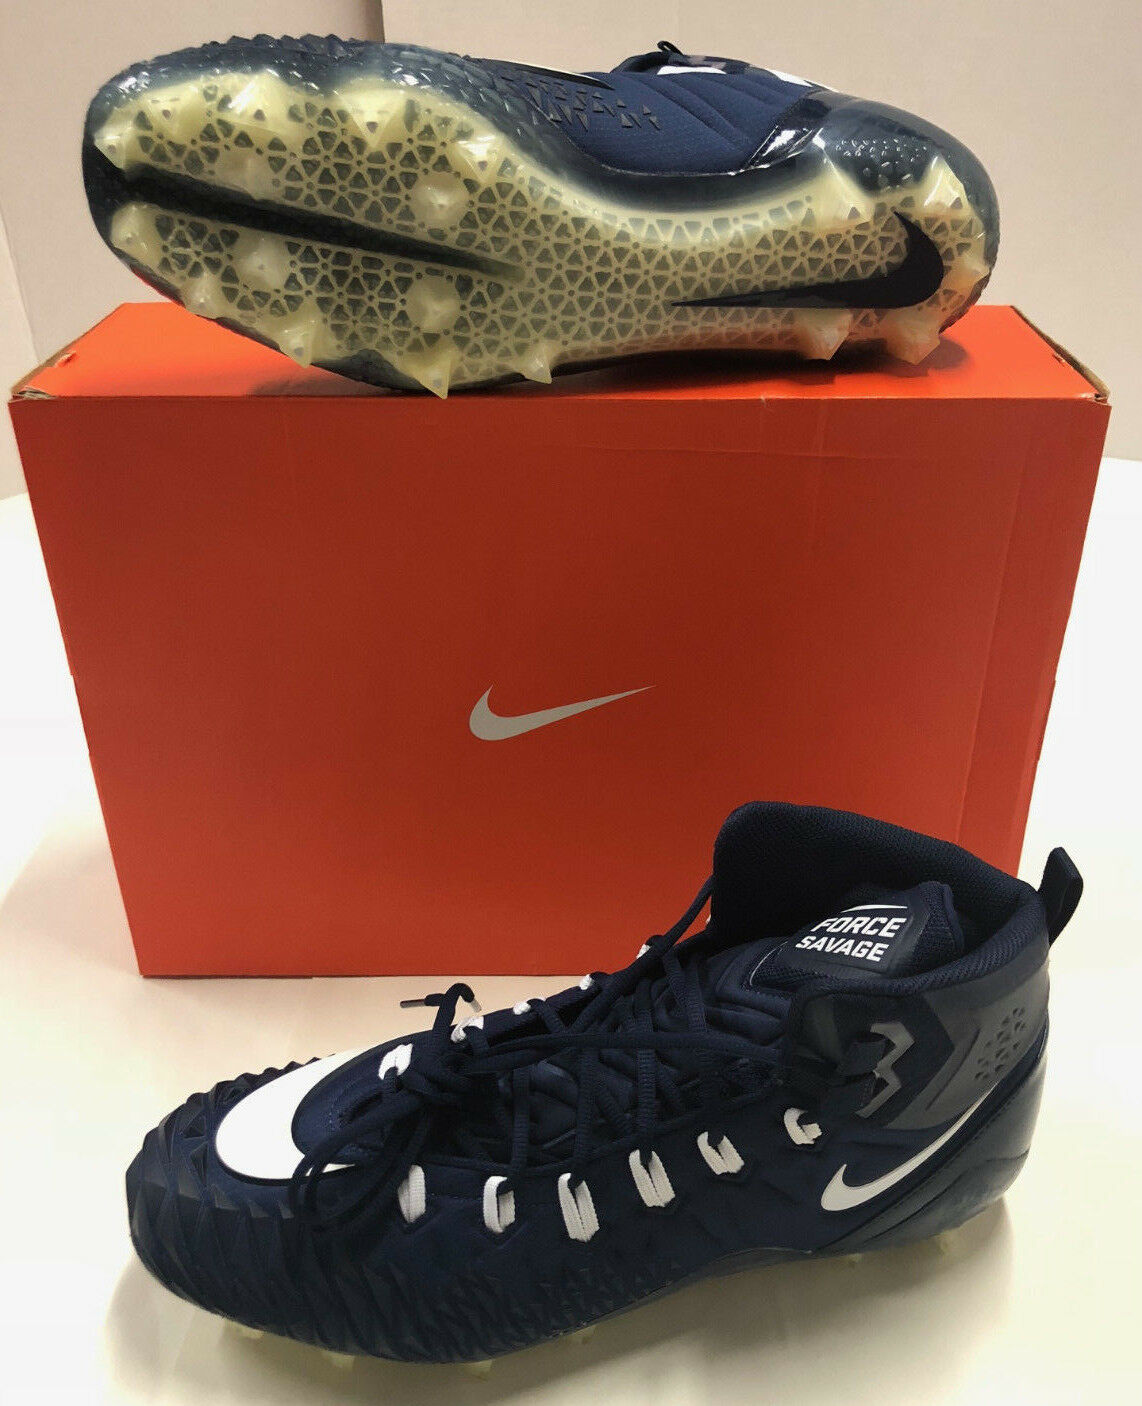 Mens Nike Force Savage Pro TD Promo Navy White Fabric Football Cleats Spikes 17